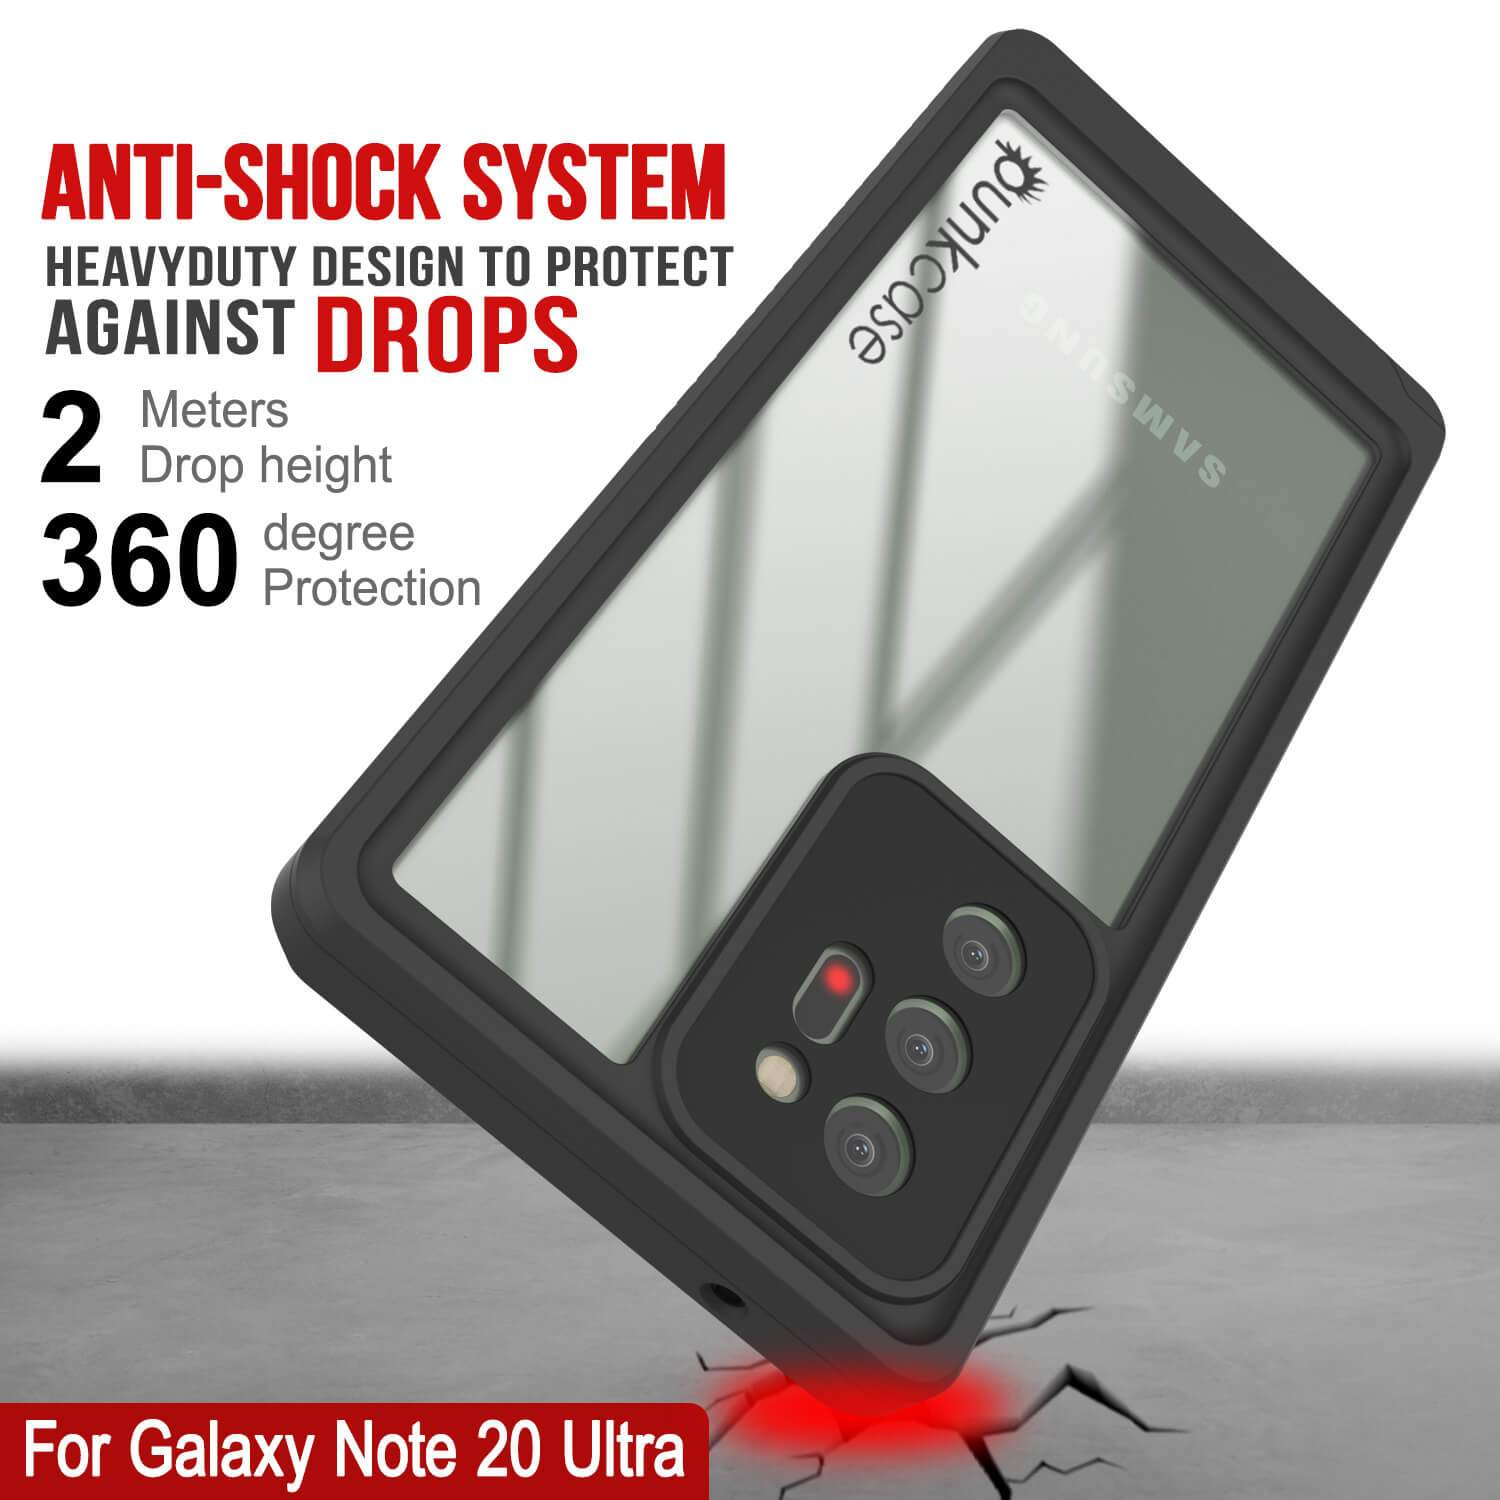 Galaxy Note 20 Ultra Case, Punkcase [Extreme Series] Armor Cover W/ Built In Screen Protector [Black]